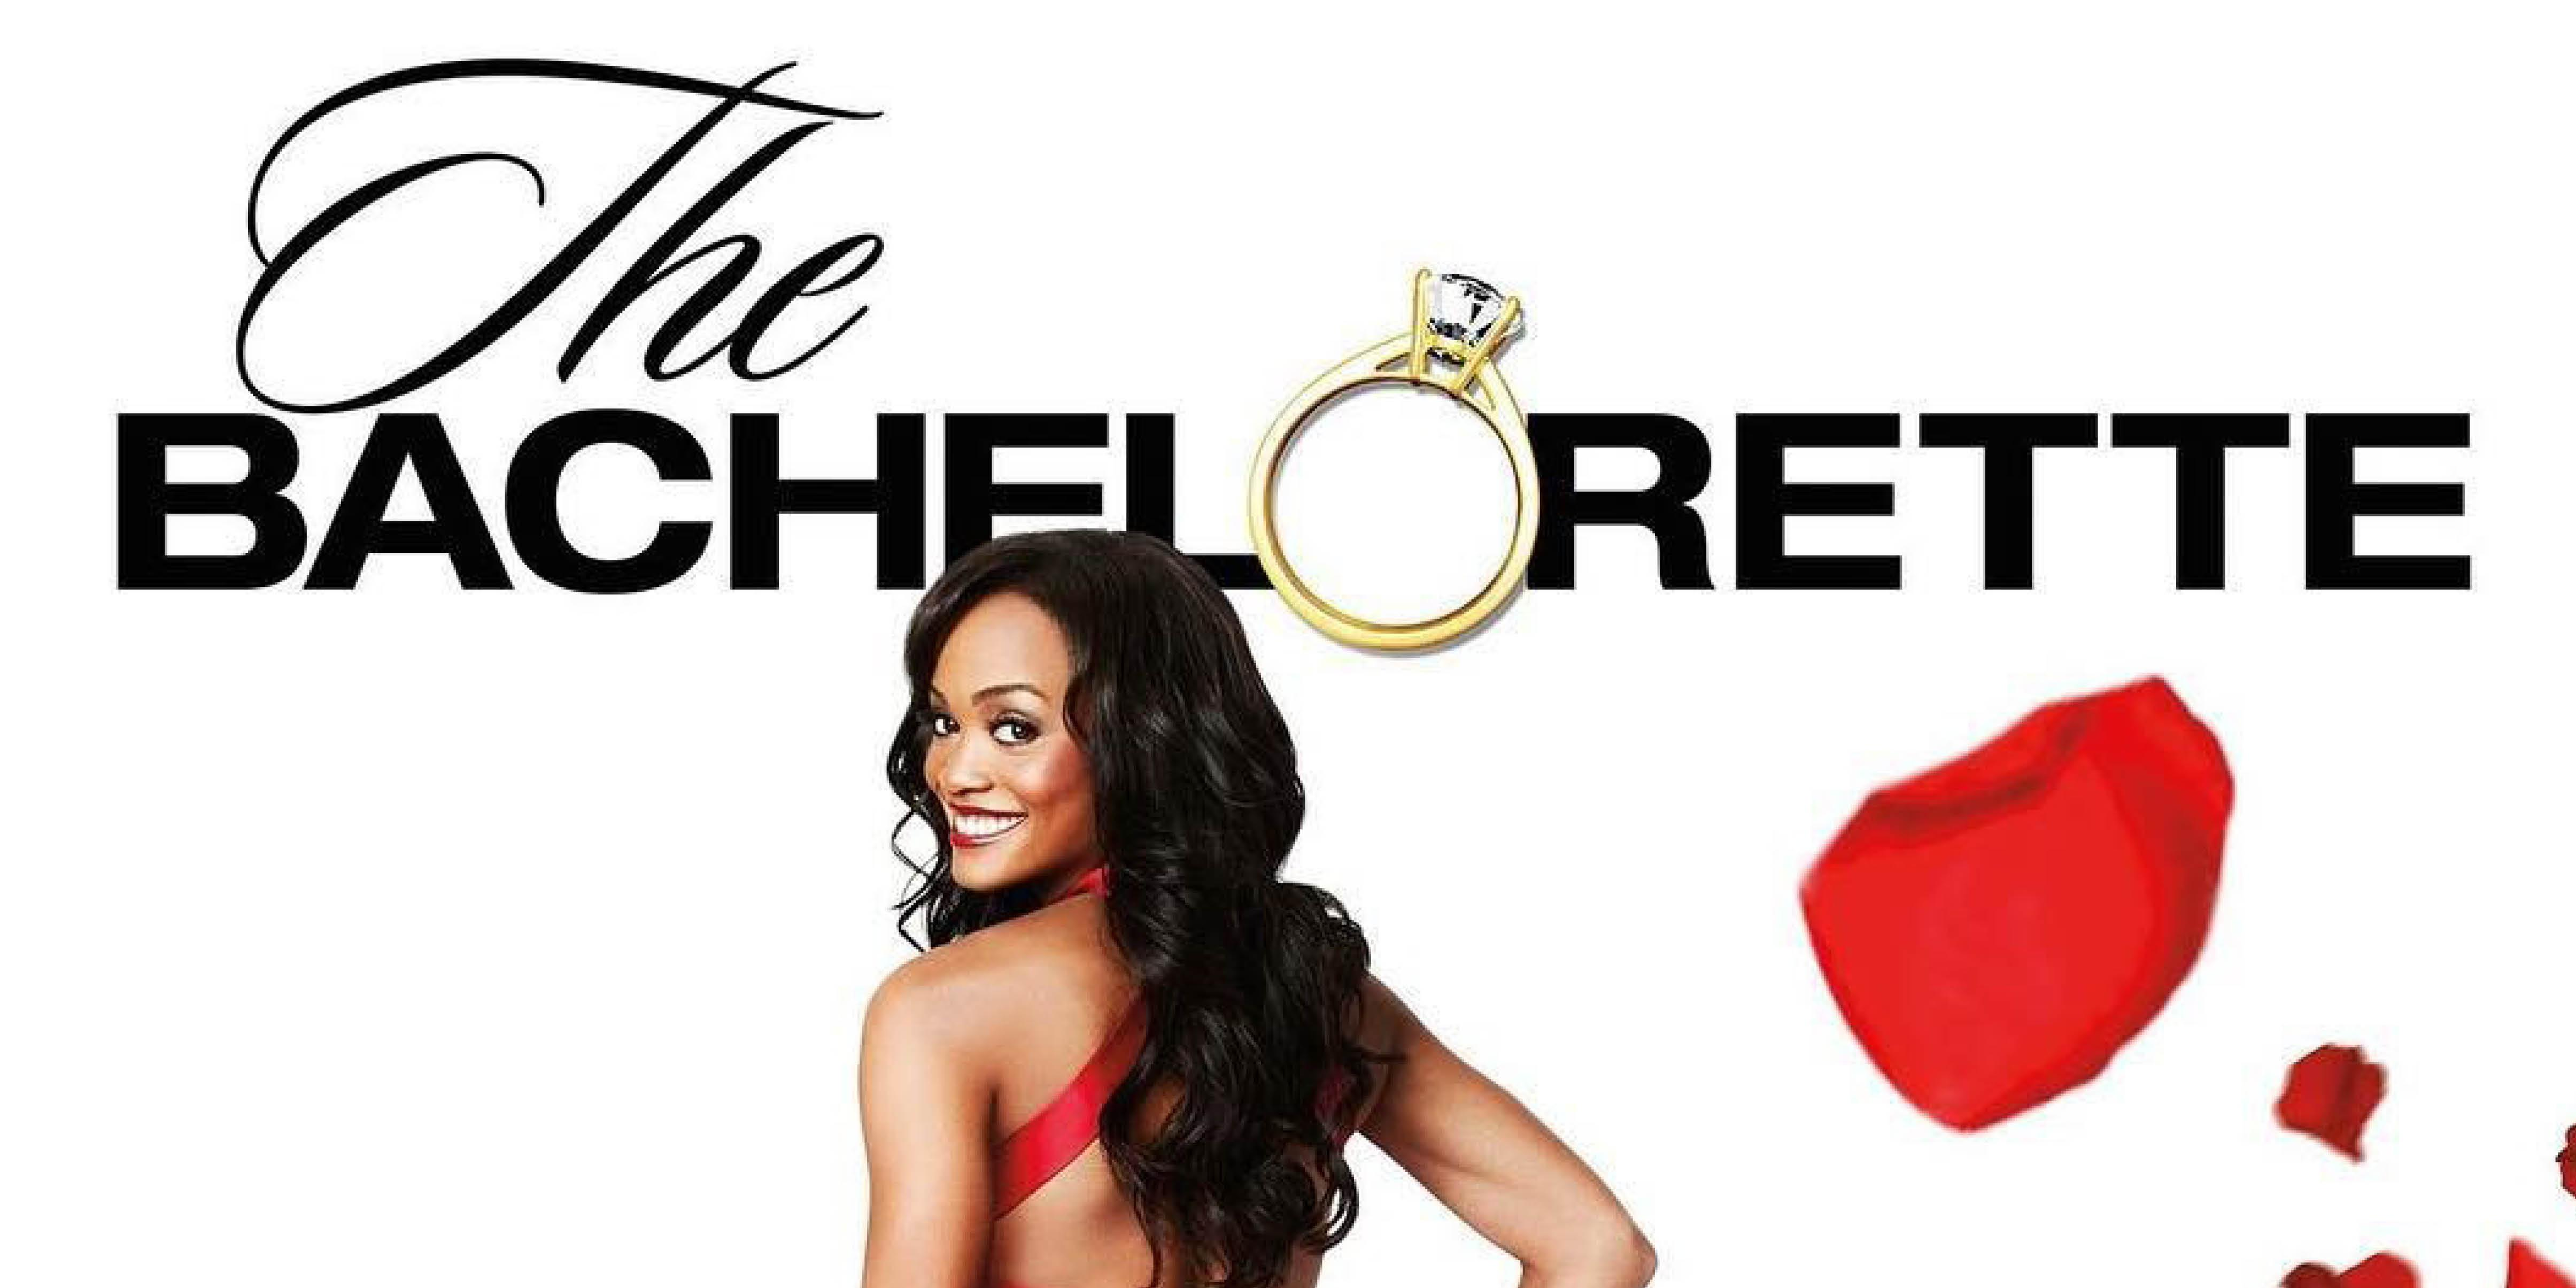 Your Guide To The Hottest Guys On The Bachelorette.